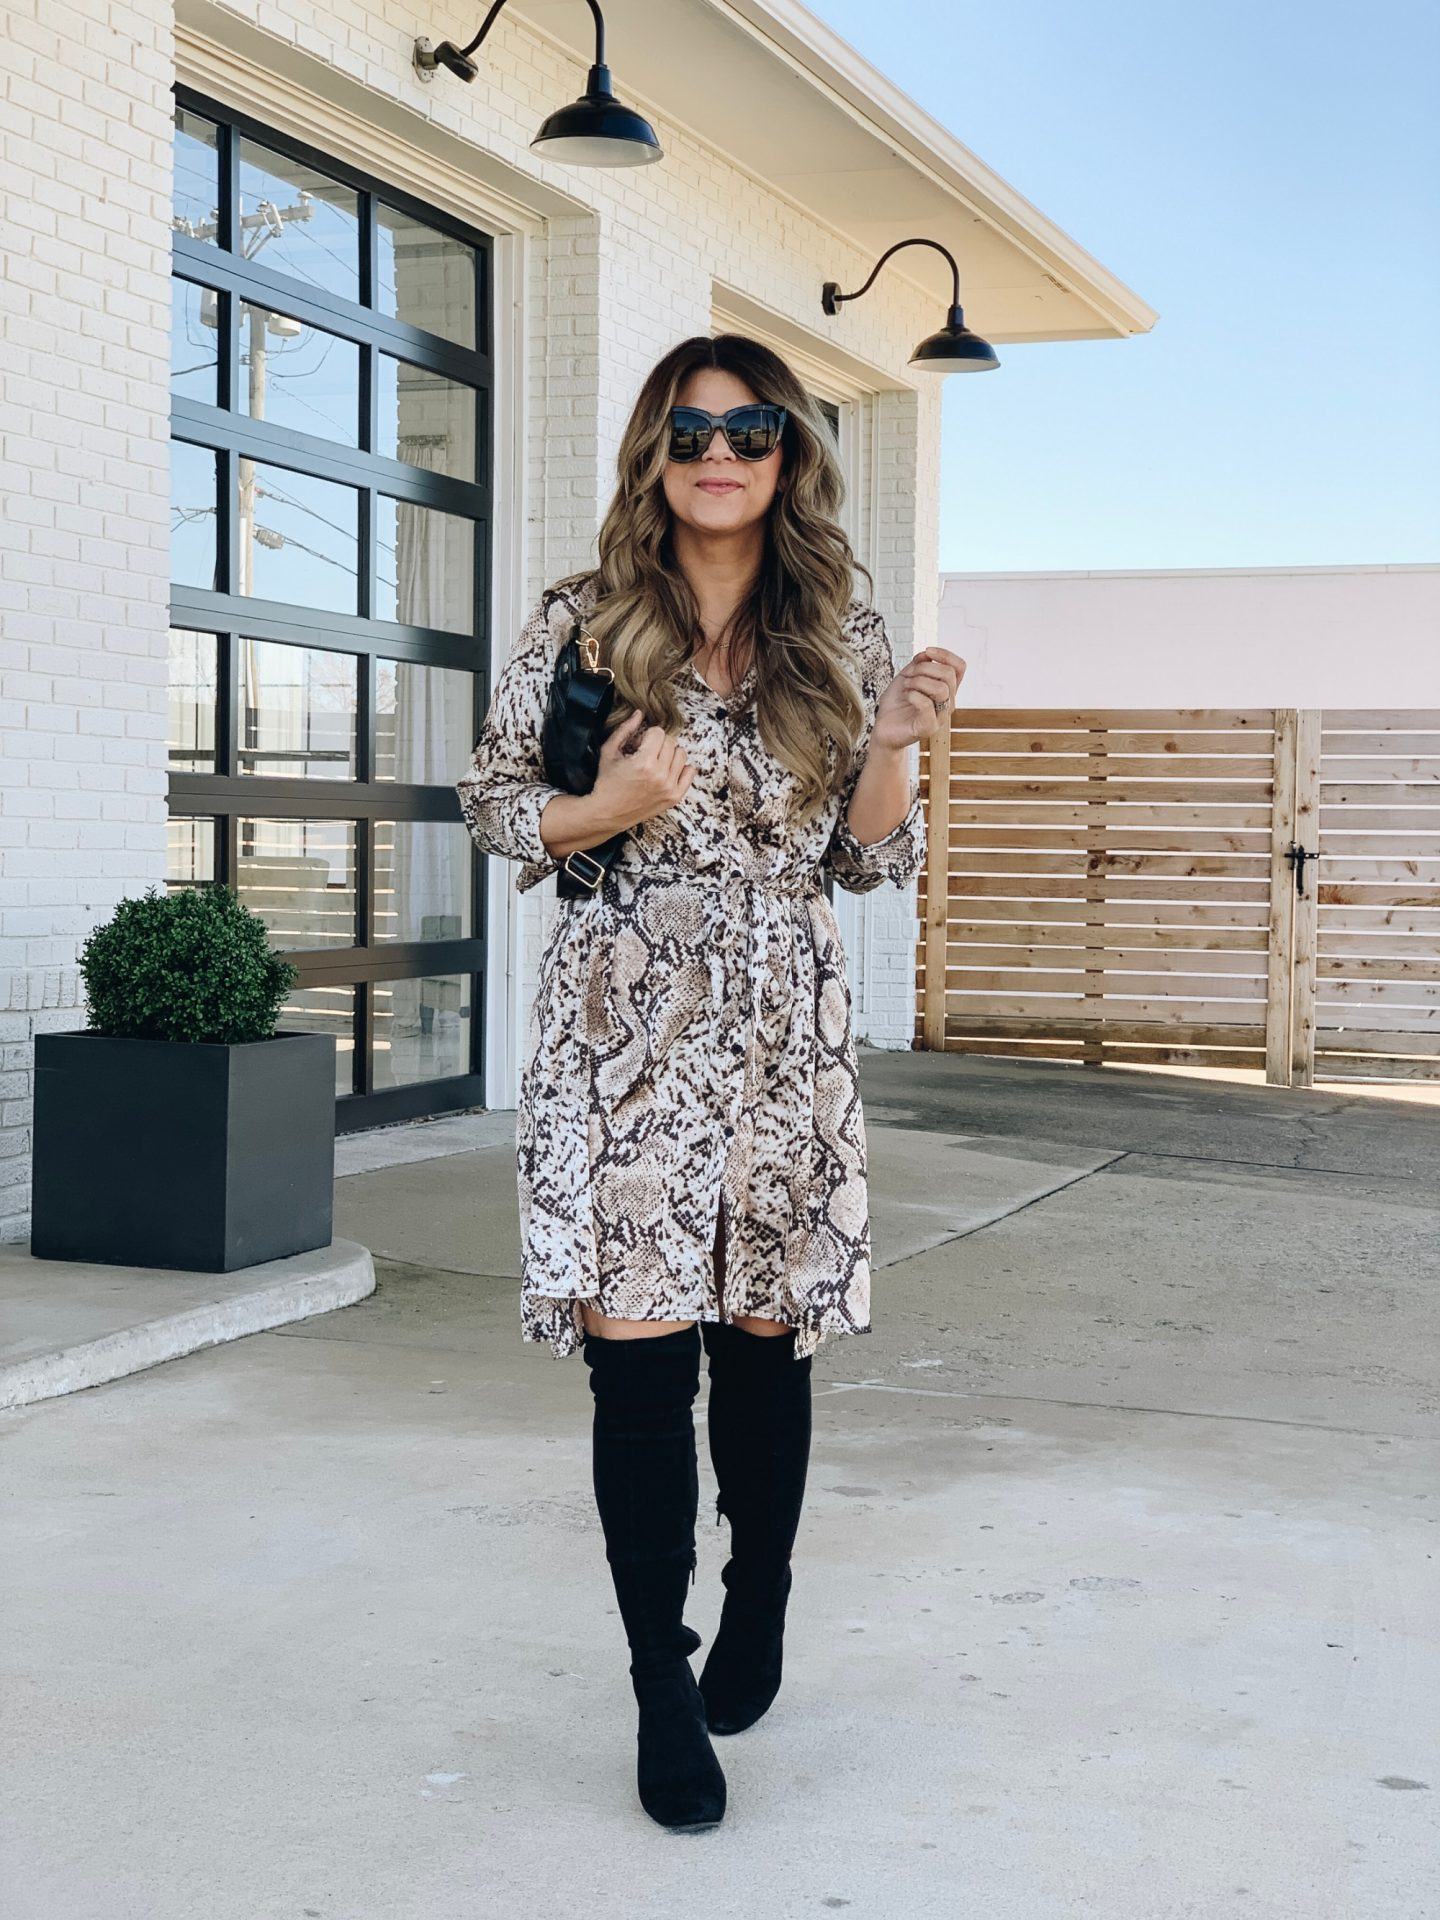 How to style a snakeskin dress, snakeskin, fanny pack, how to wear a belt bag, snake skin, how to style over the knee boots, www.lindseymeek.com